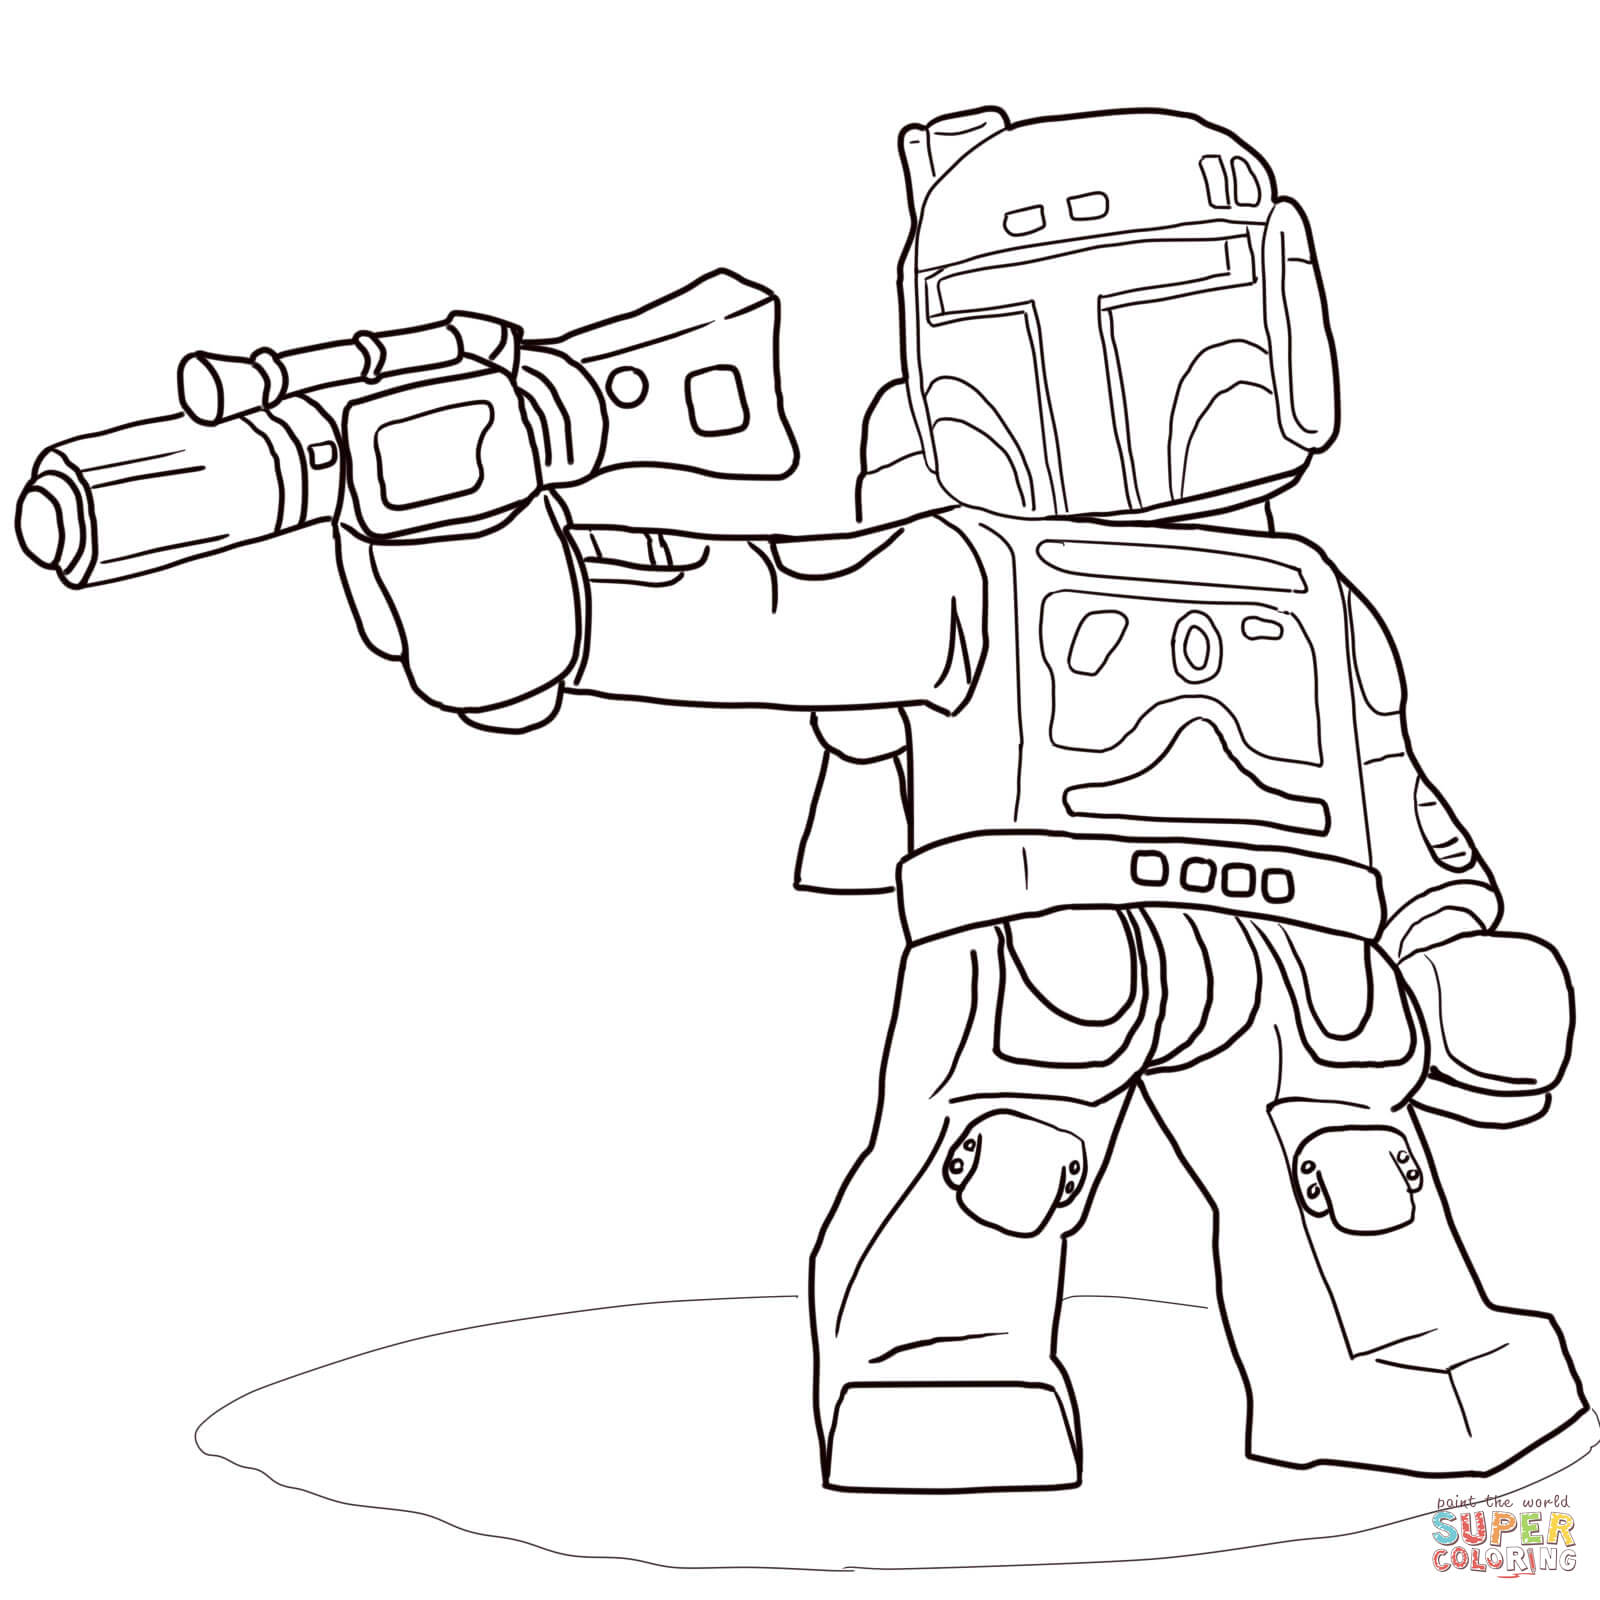 Lego Star Wars Boba Fett coloring page | Free Printable Coloring Pages